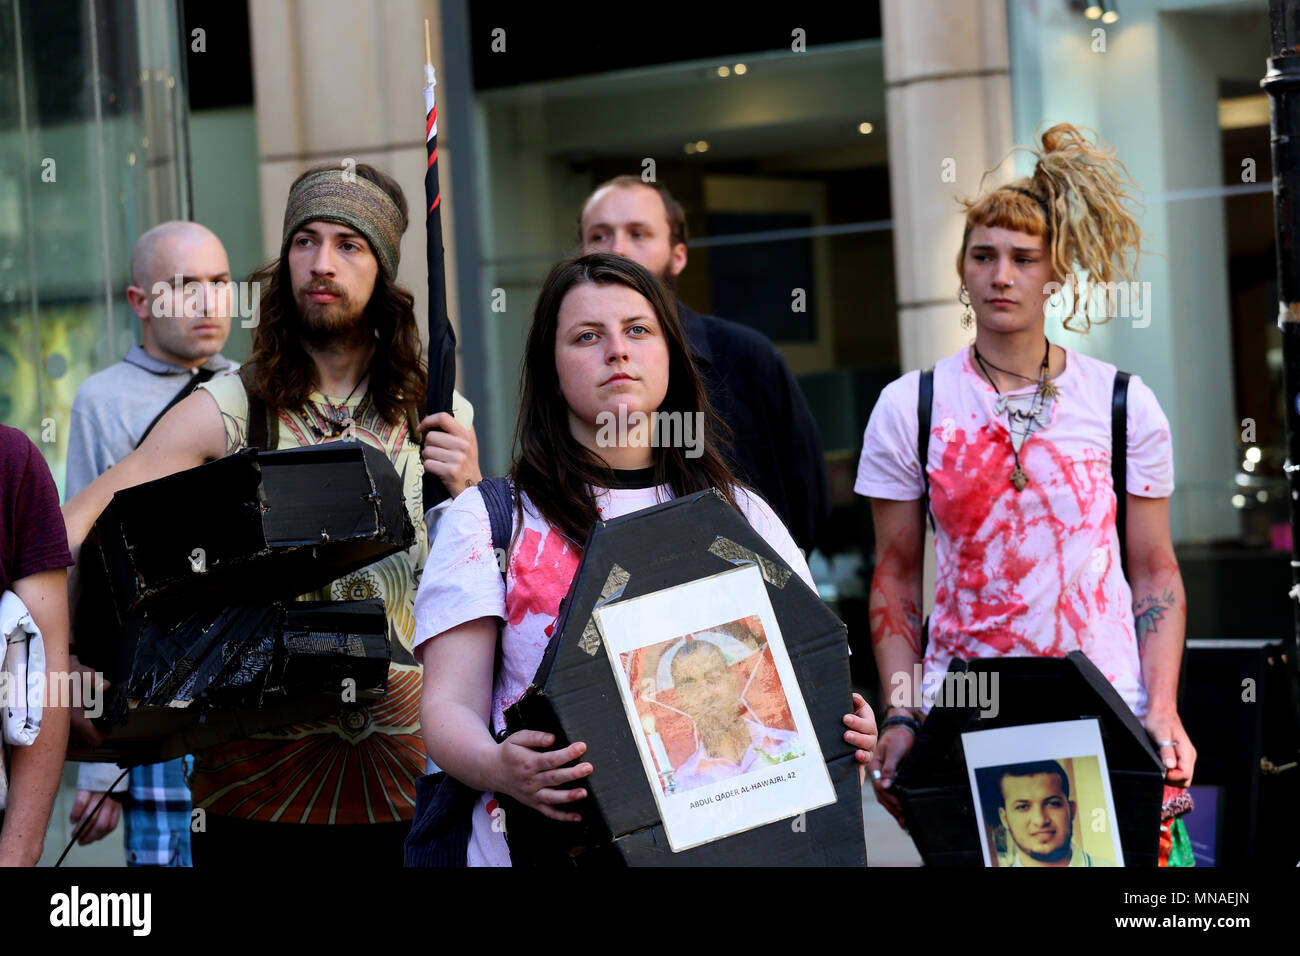 Manchester, UK. 15th May 2018. Pro Palestinian campaigners entered HSBC Bank, laying coffins and fake bank notes on the floor to protest at Òthe banks deals with arms companies and calling for banks to divest from companies that sell weapons to Israel'.  Police were called to the bank and the protesters moved outside, St Anns Square, Manchester,15th May, 2018 (C)Barbara Cook/Alamy Live News - Stock Image